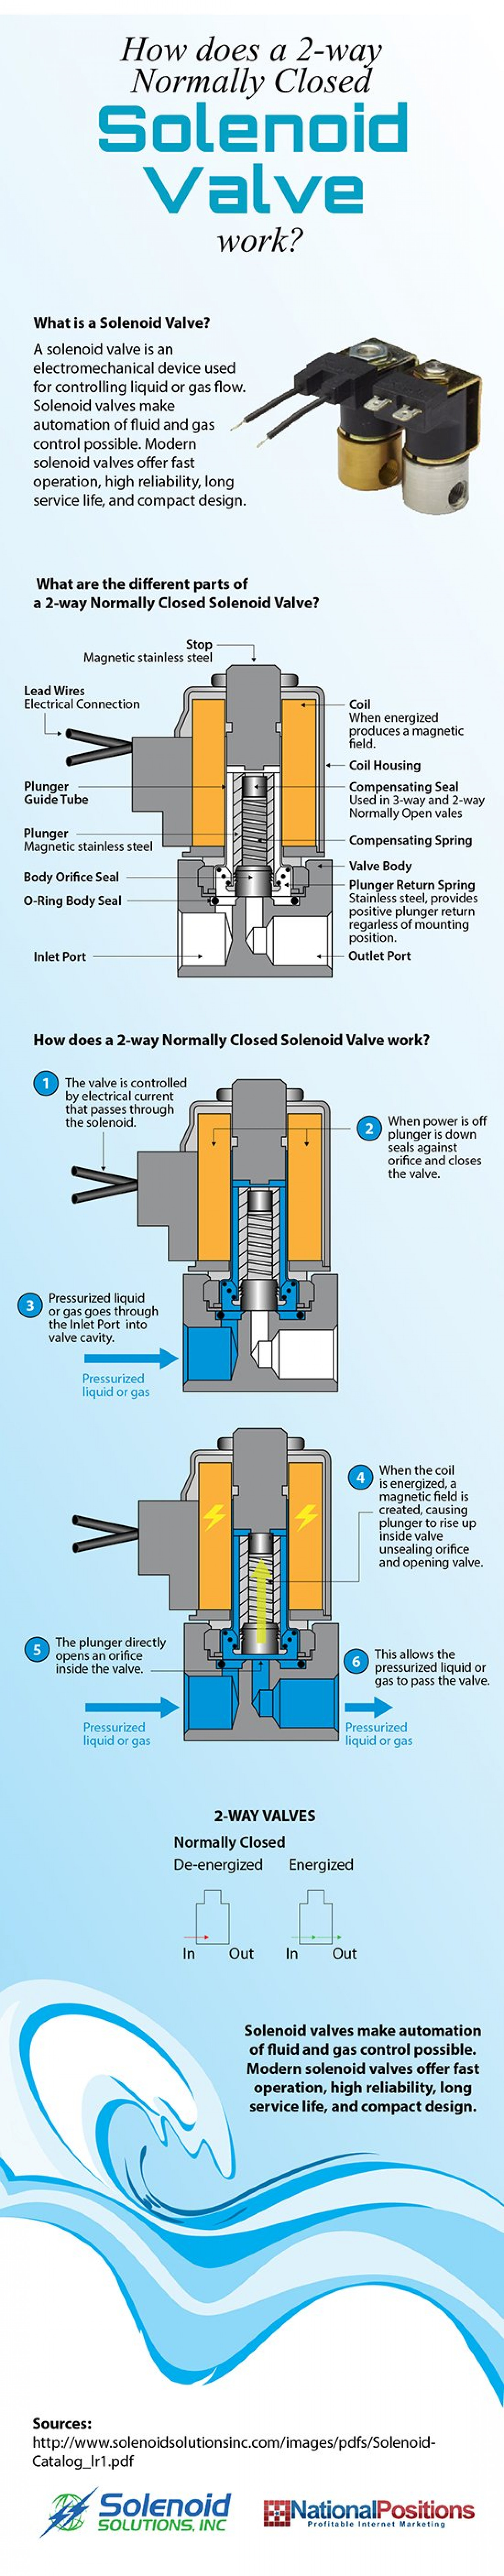 How A 2-Way Normally Closed Solenoid Valve Works Infographic